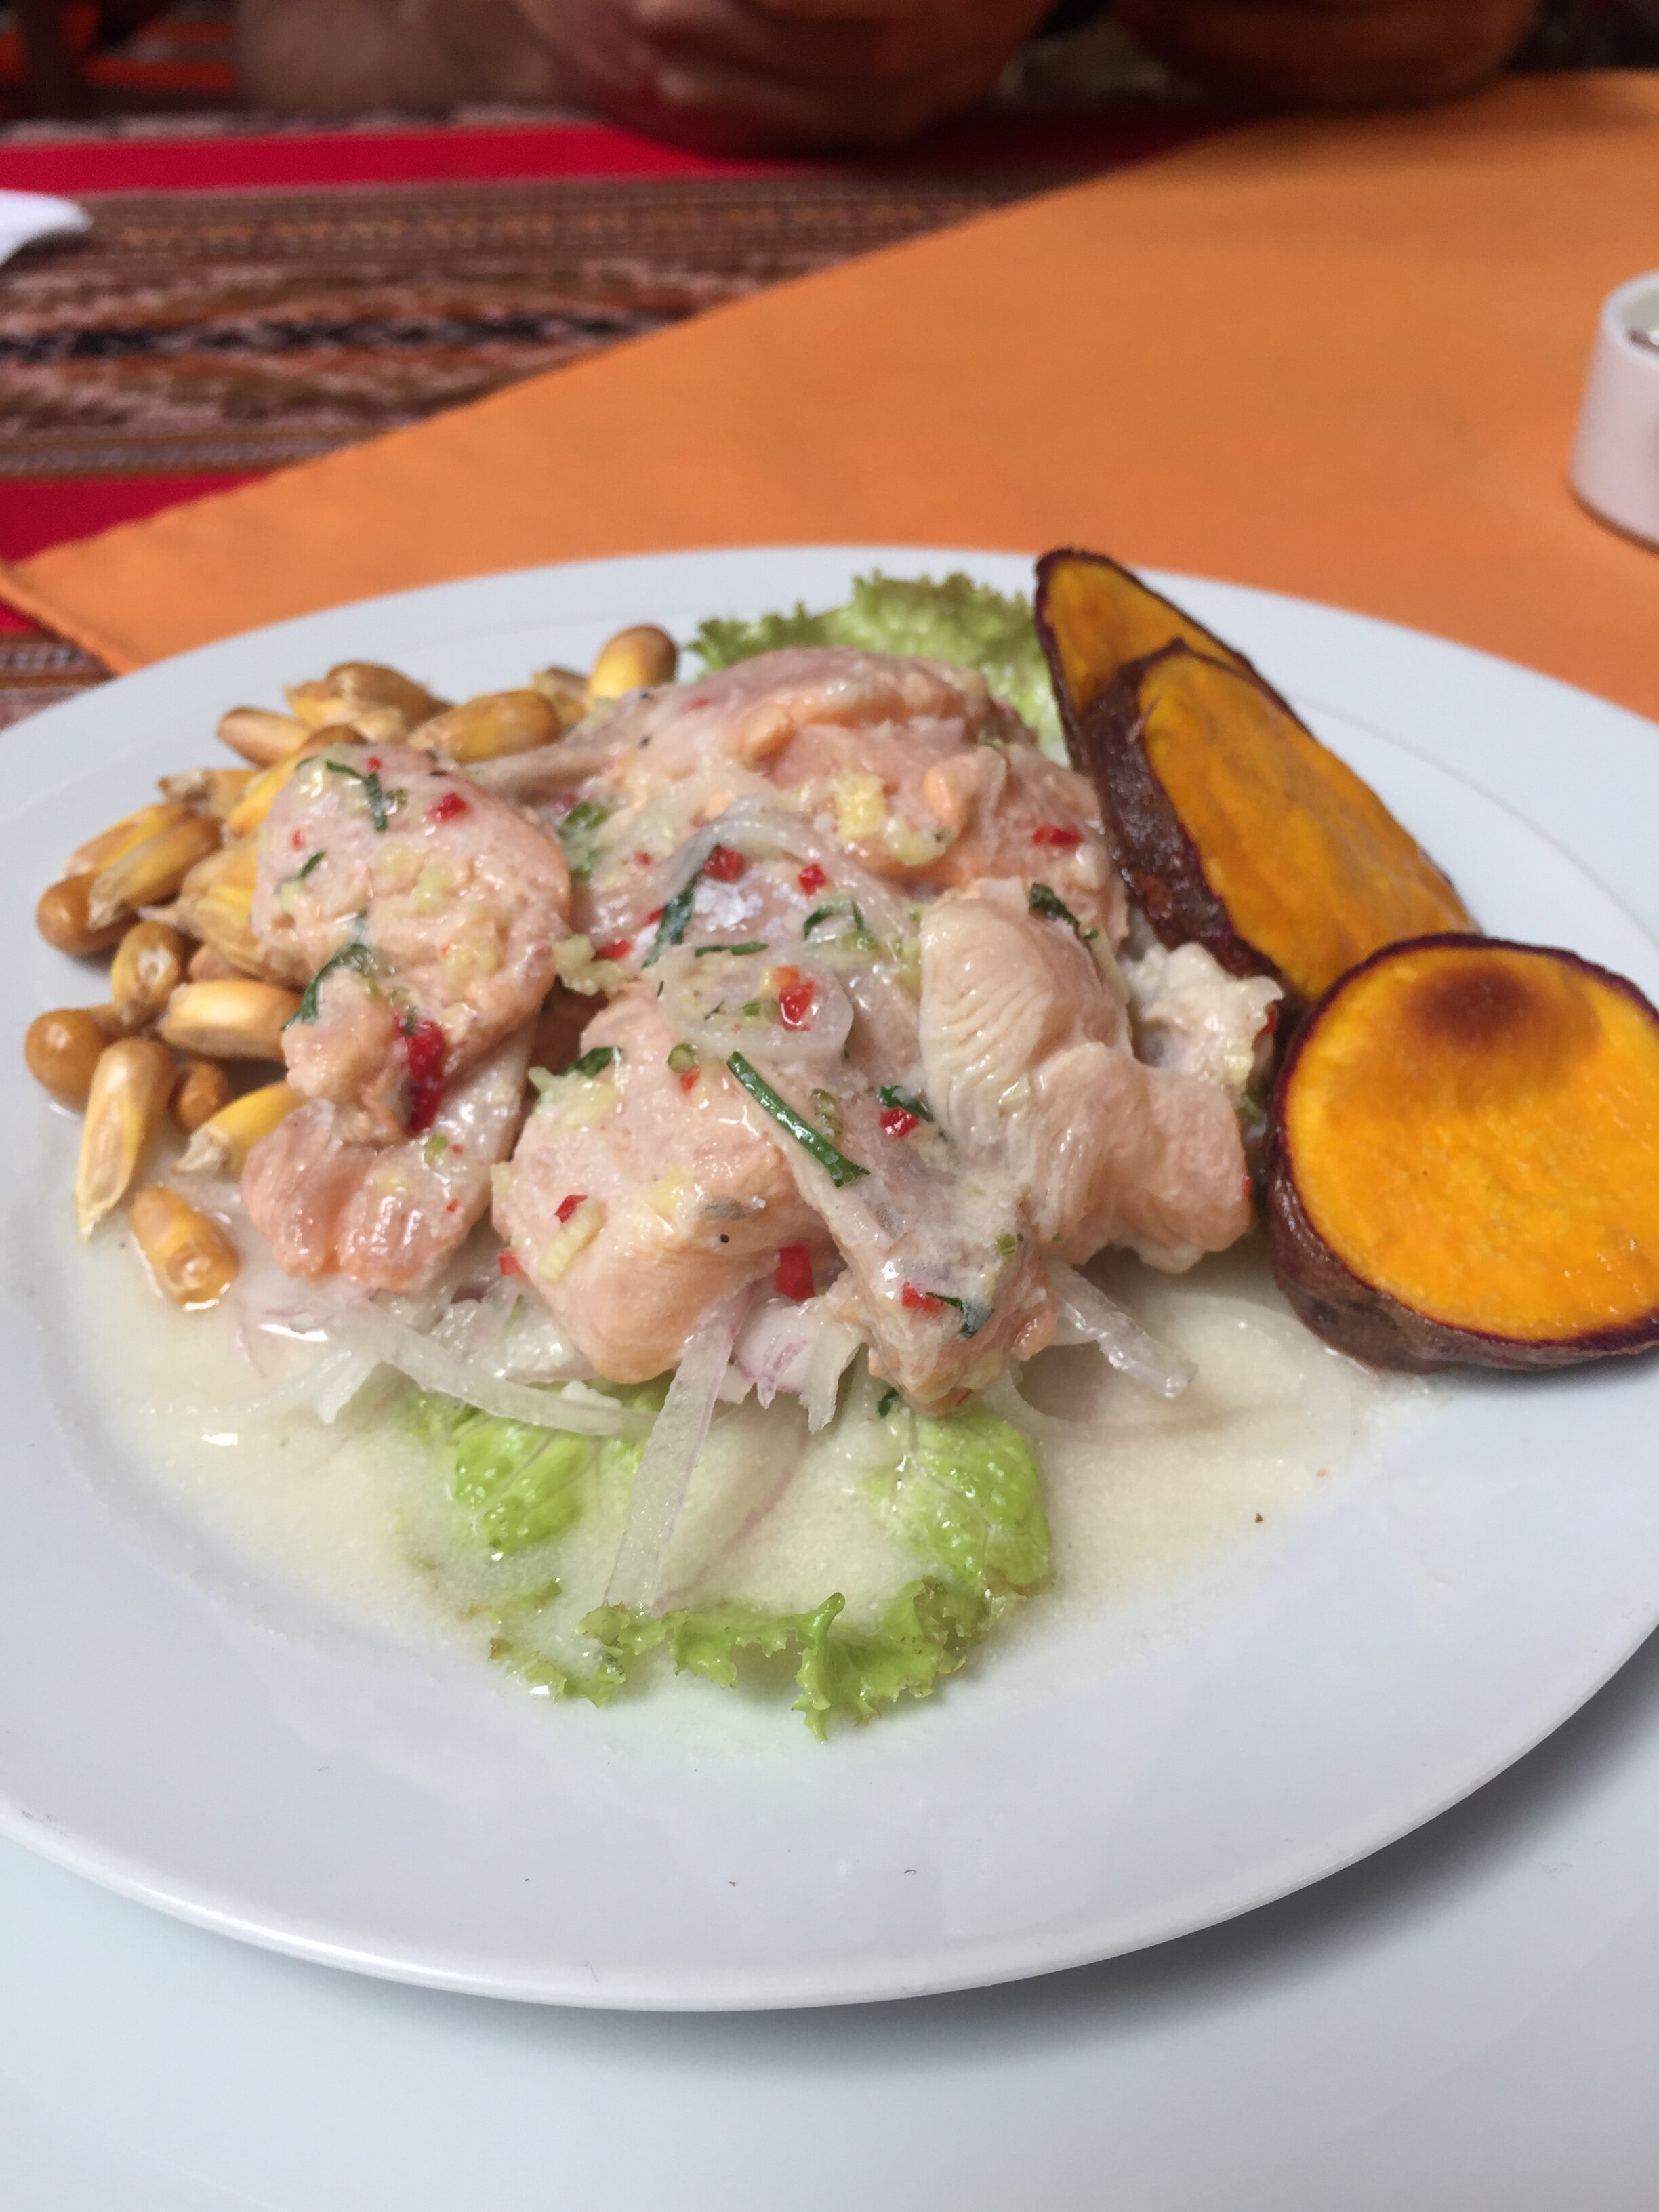 Good old ceviche with canchita. You can never go wrong with this.